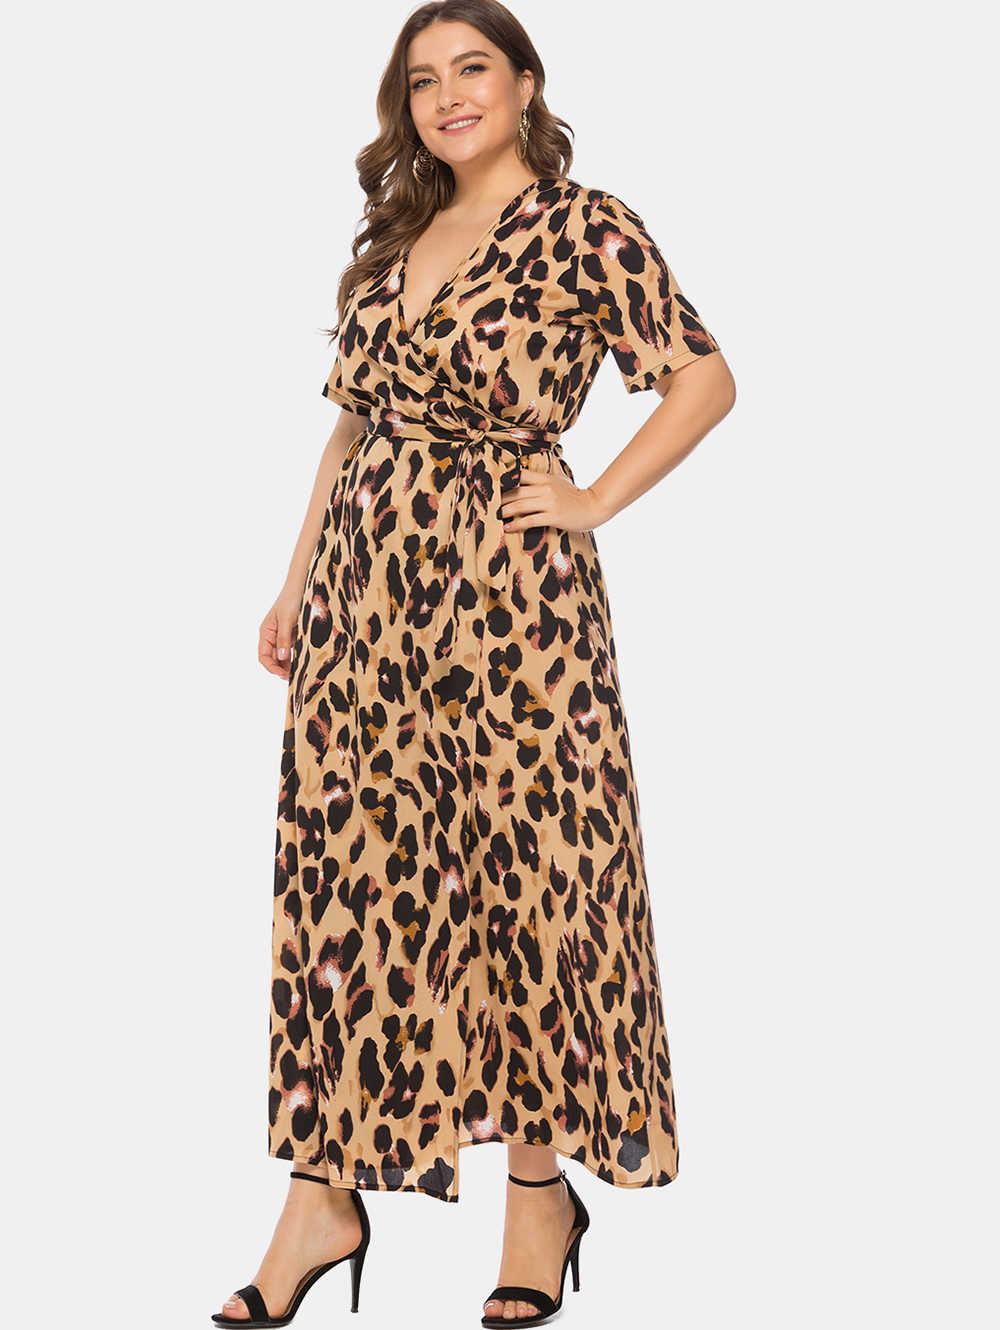 78b1f417ec Wipalo Women Plus Size 6XL Leopard Print Wrap Maxi Dress V Neck Short  Sleeves Ankle-Length Casual Dress 2019 Summer Vestidos